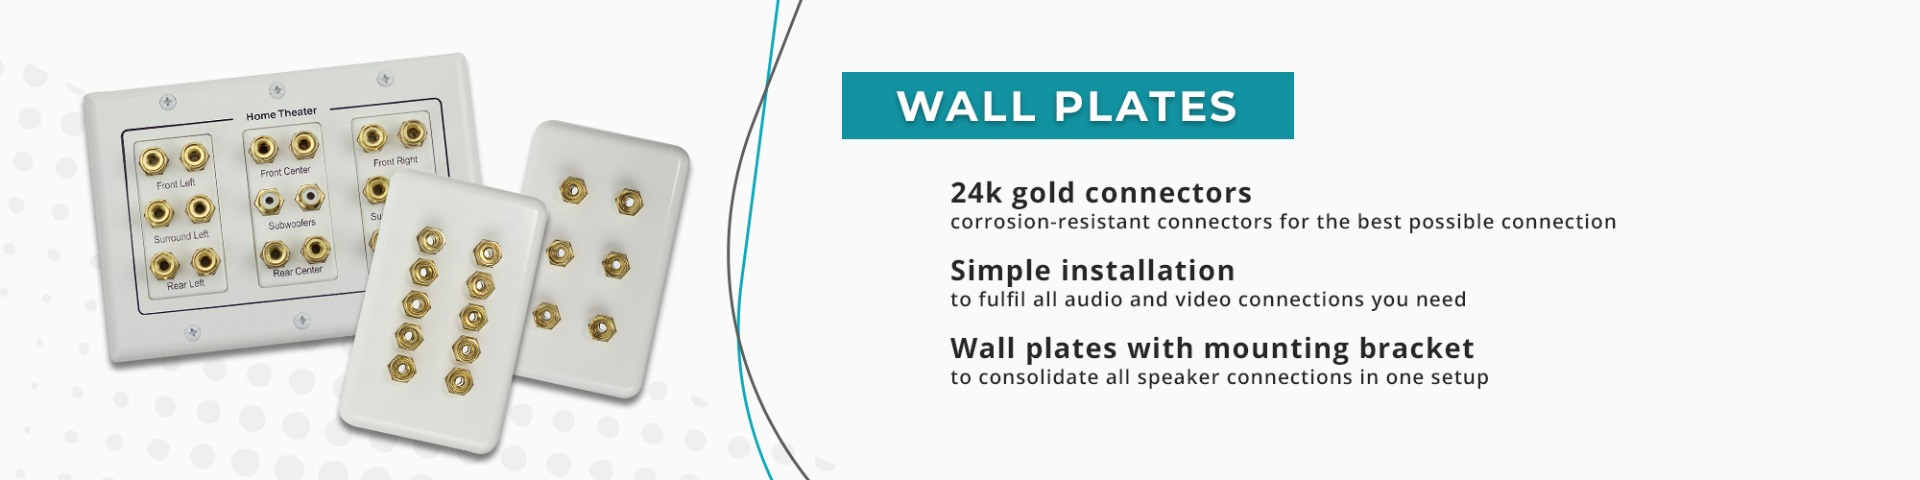 speaker wall plates, av wall plates, wall plates with bracket, home theatre wall plate